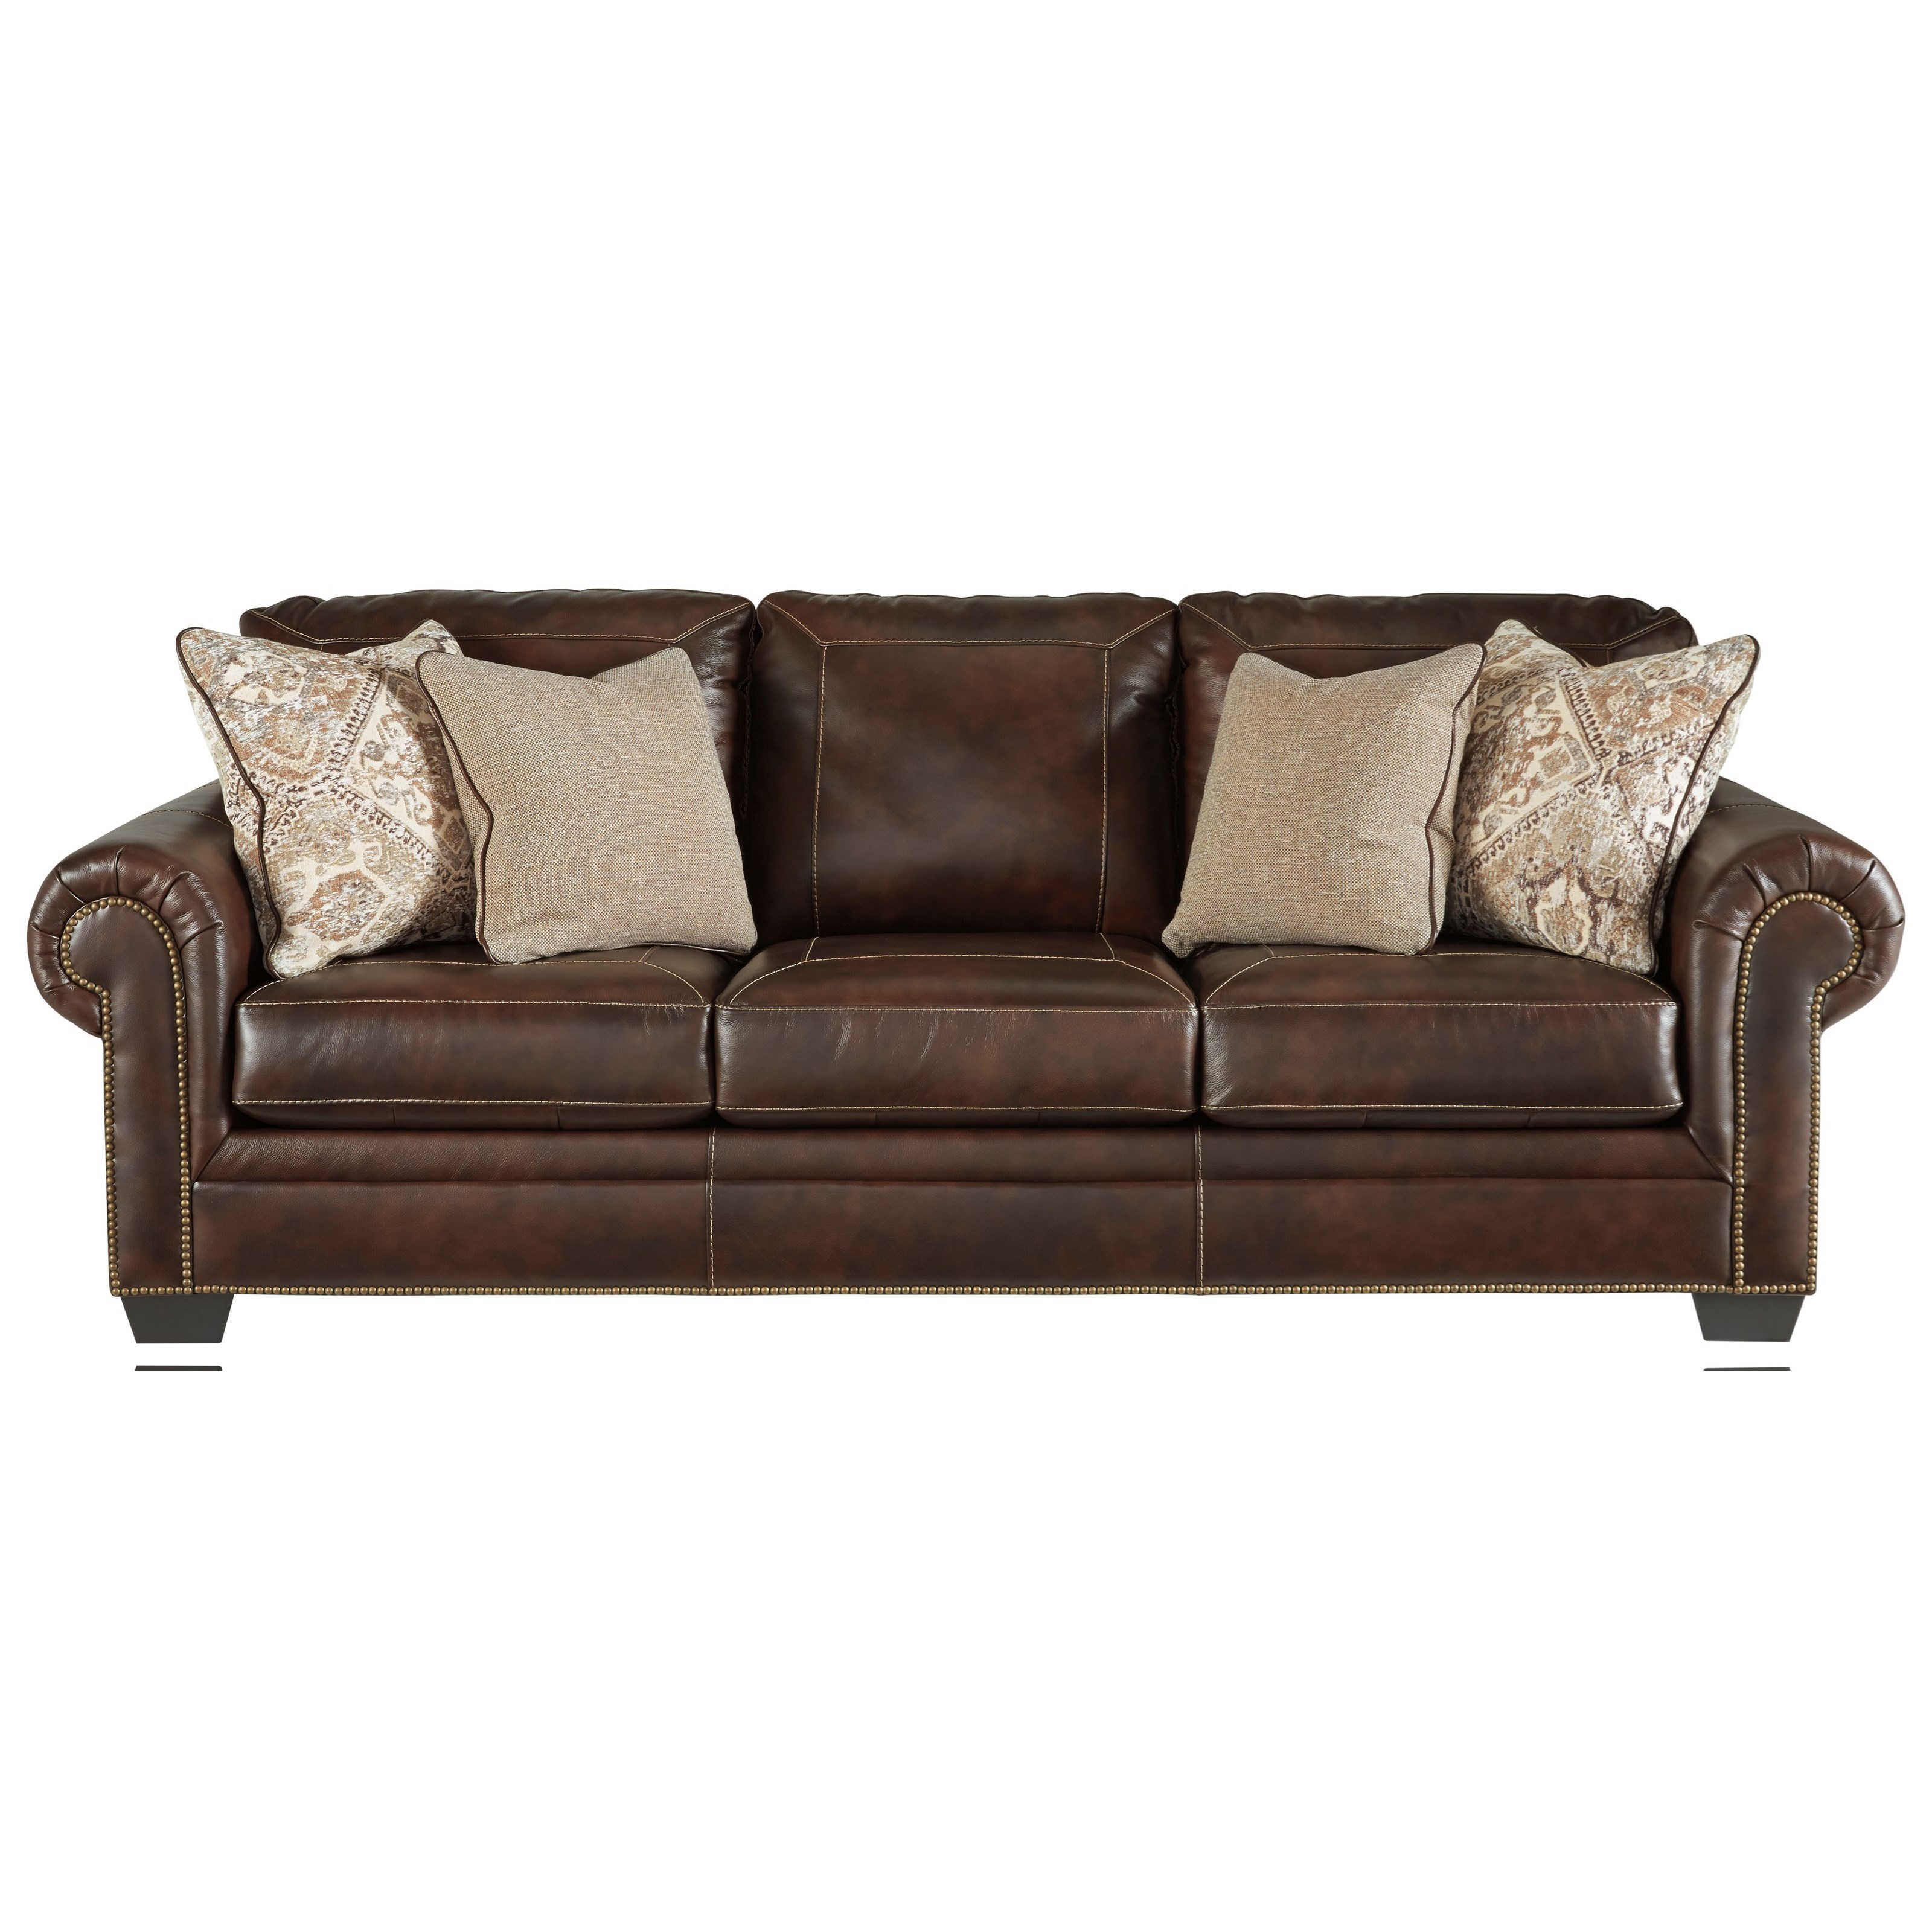 Roleson Queen Sofa Sleeper by Ashley (Signature Design) at Johnny Janosik